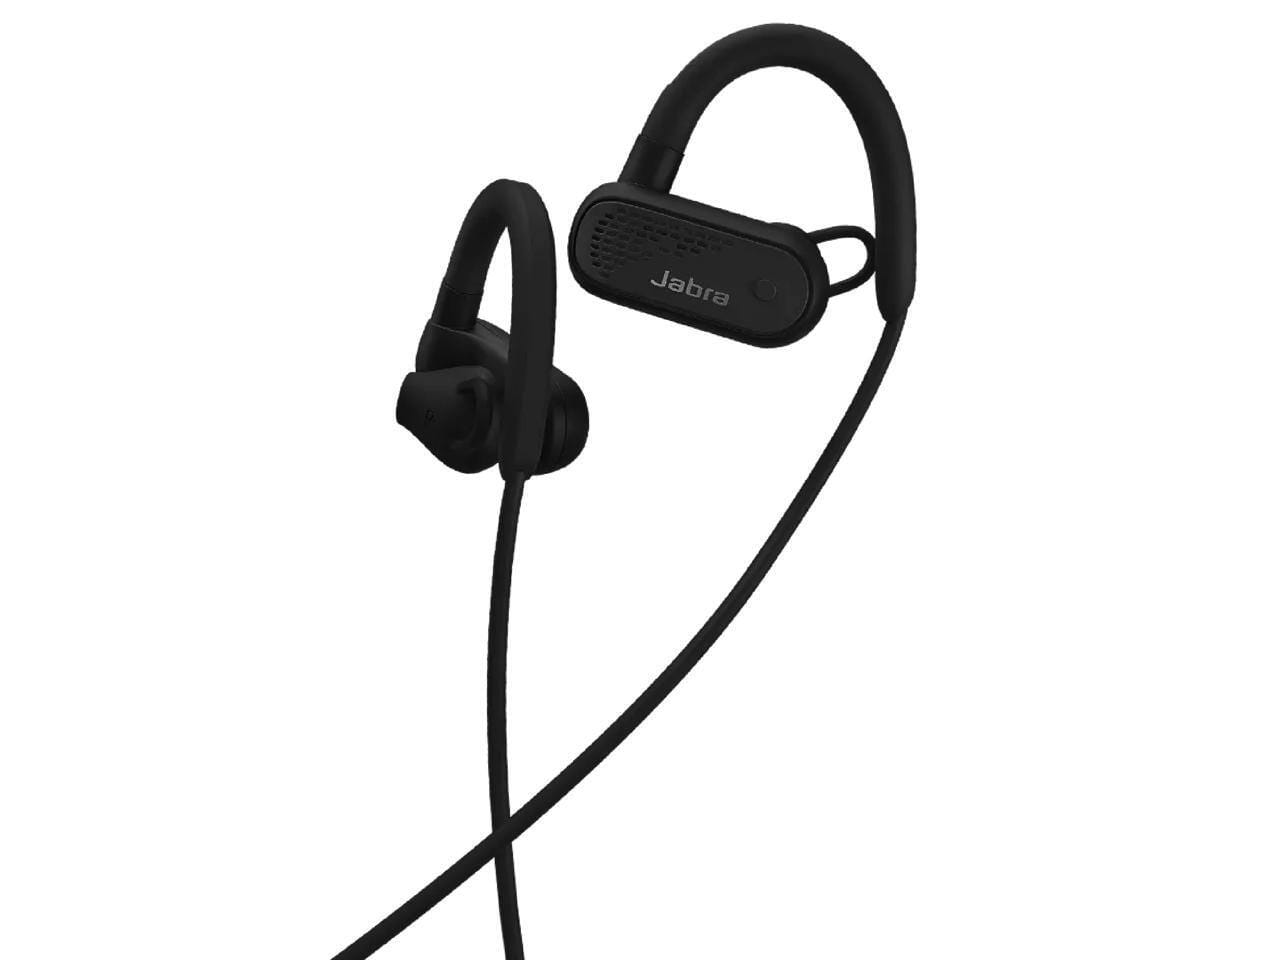 Jabra Wireless Earbuds Clearance Sale (Various Styles) Starting at $22.49 + FS